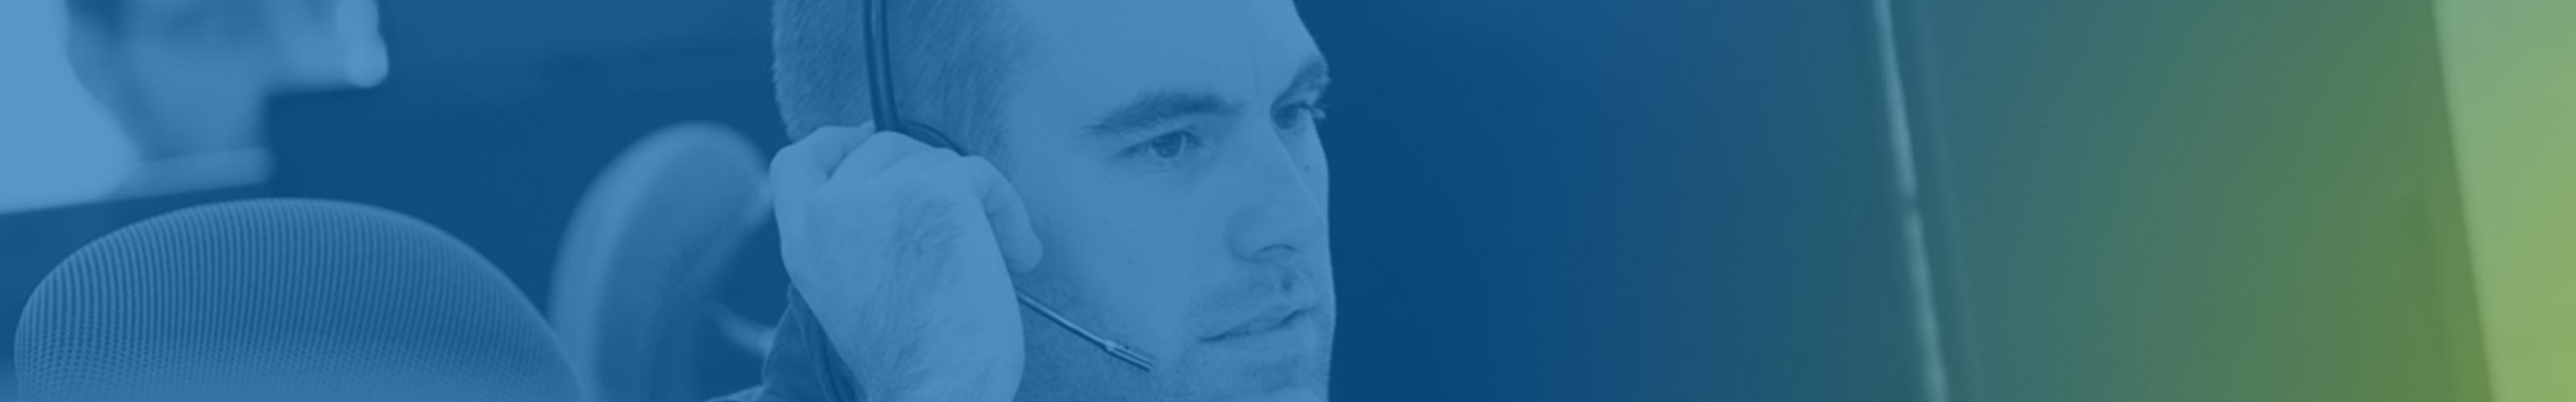 IT-Support-Engineer-Cyan-Andy-banner